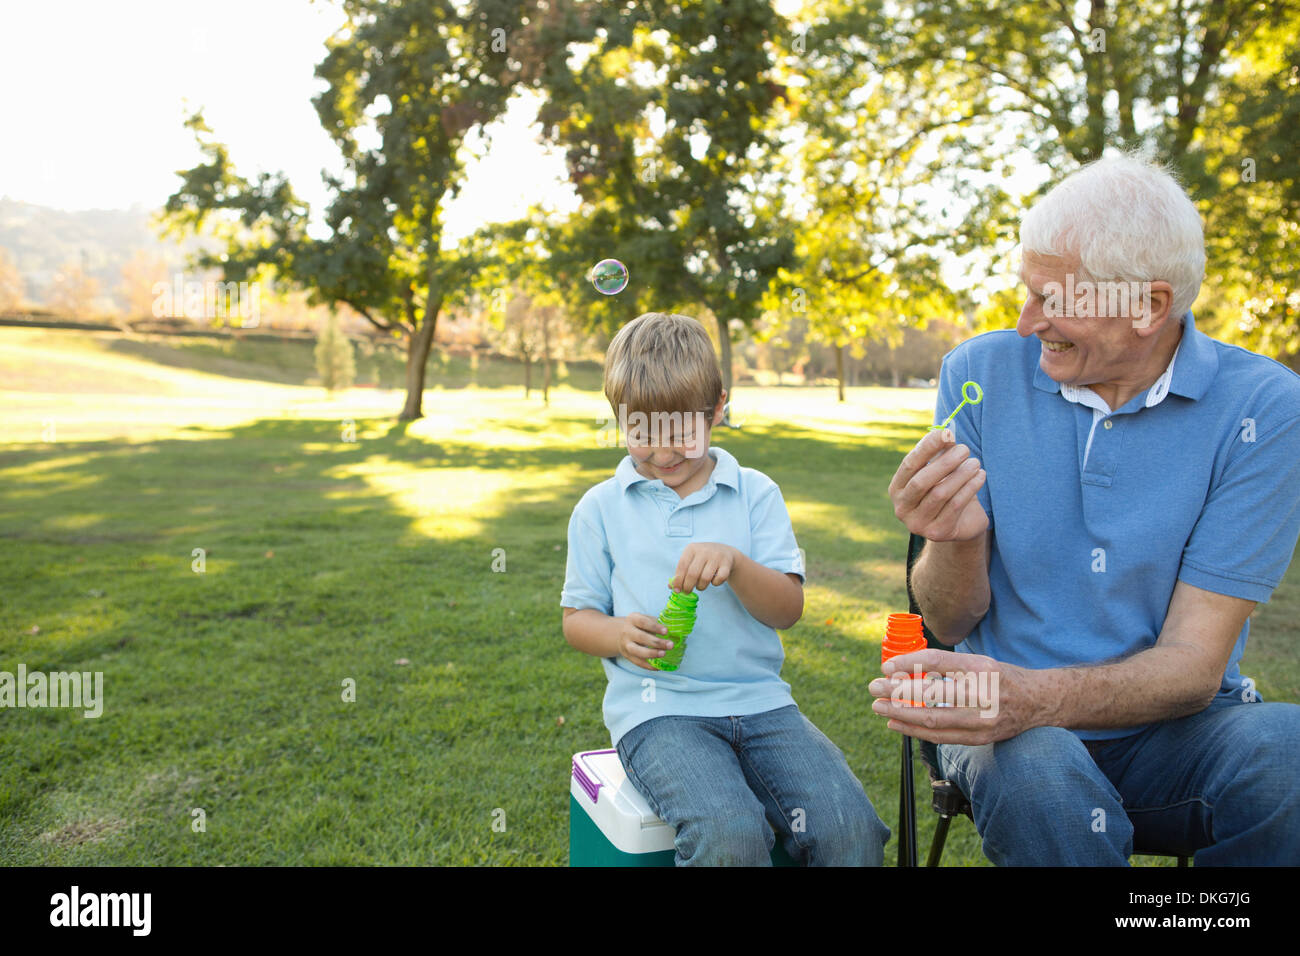 Grandfather and grandson blowing bubbles - Stock Image